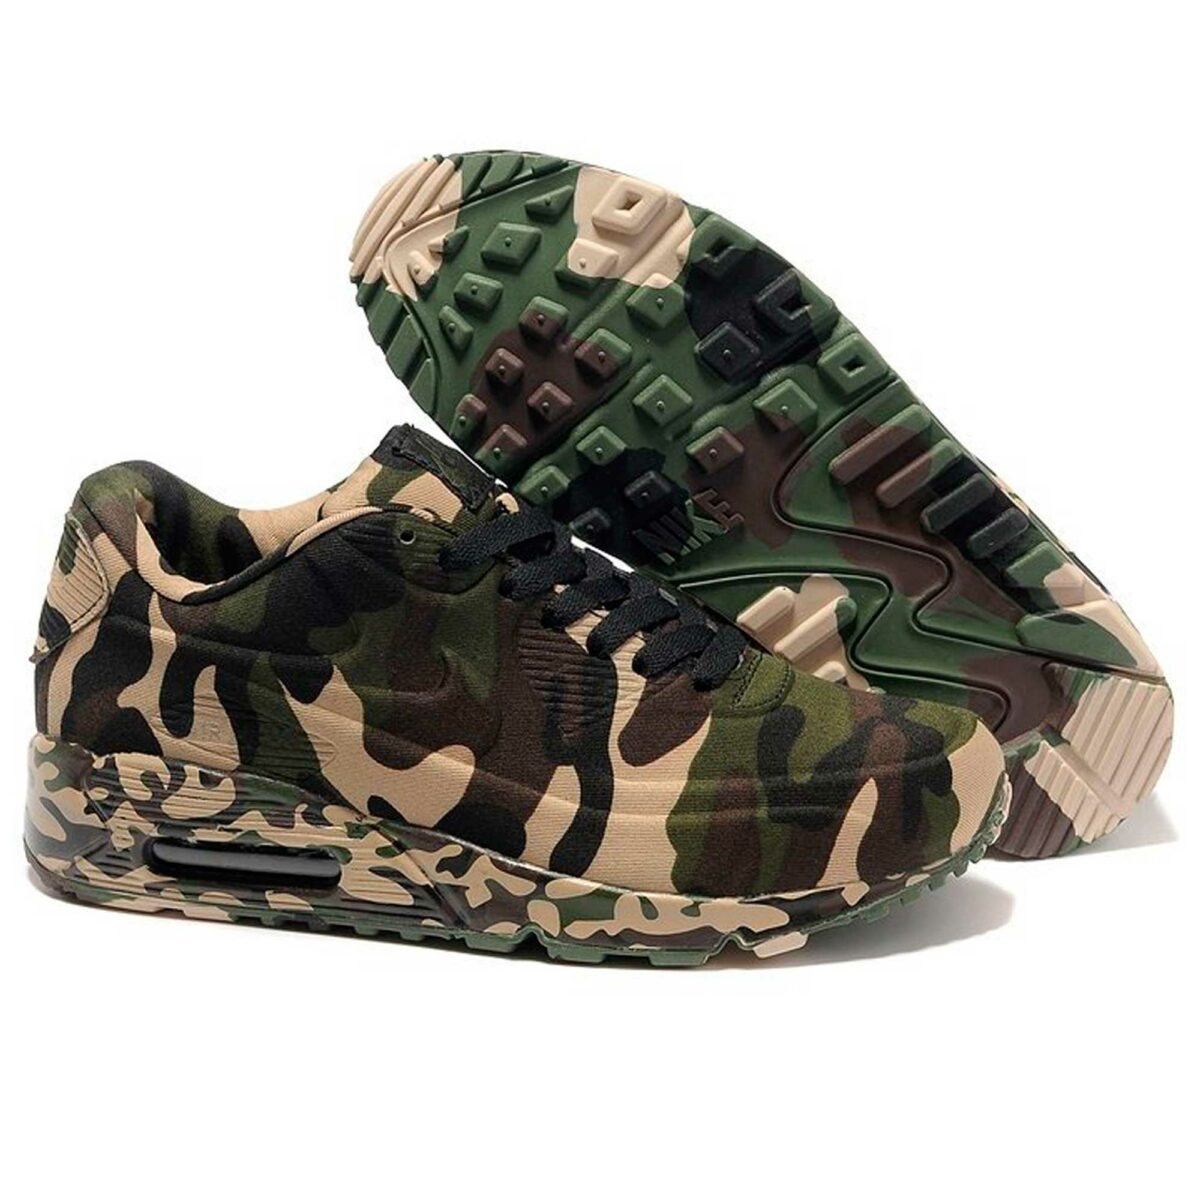 nike air max 90 VT camouflage army green 472513-008 купить